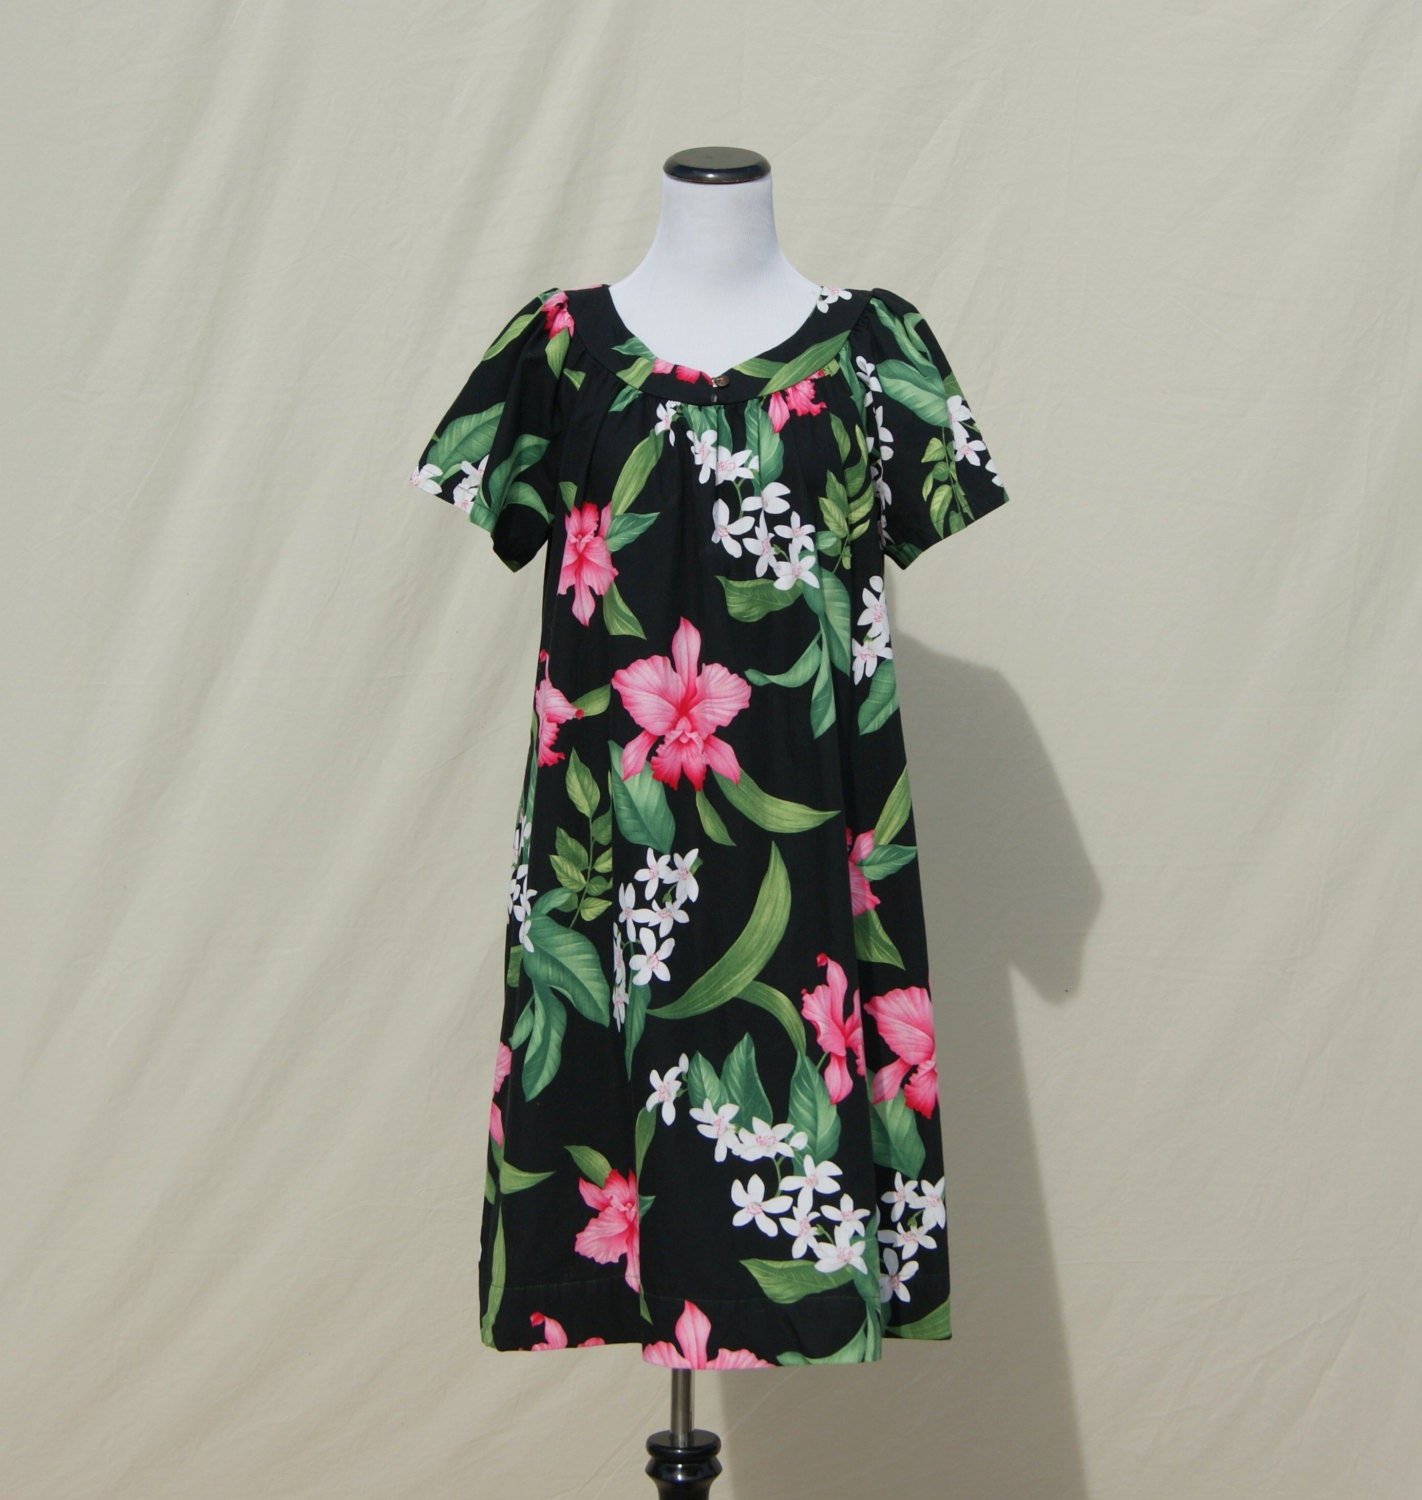 Amazing  Moo Moo Dress For Women PINKL Print Dresses  Rosewholesalecom